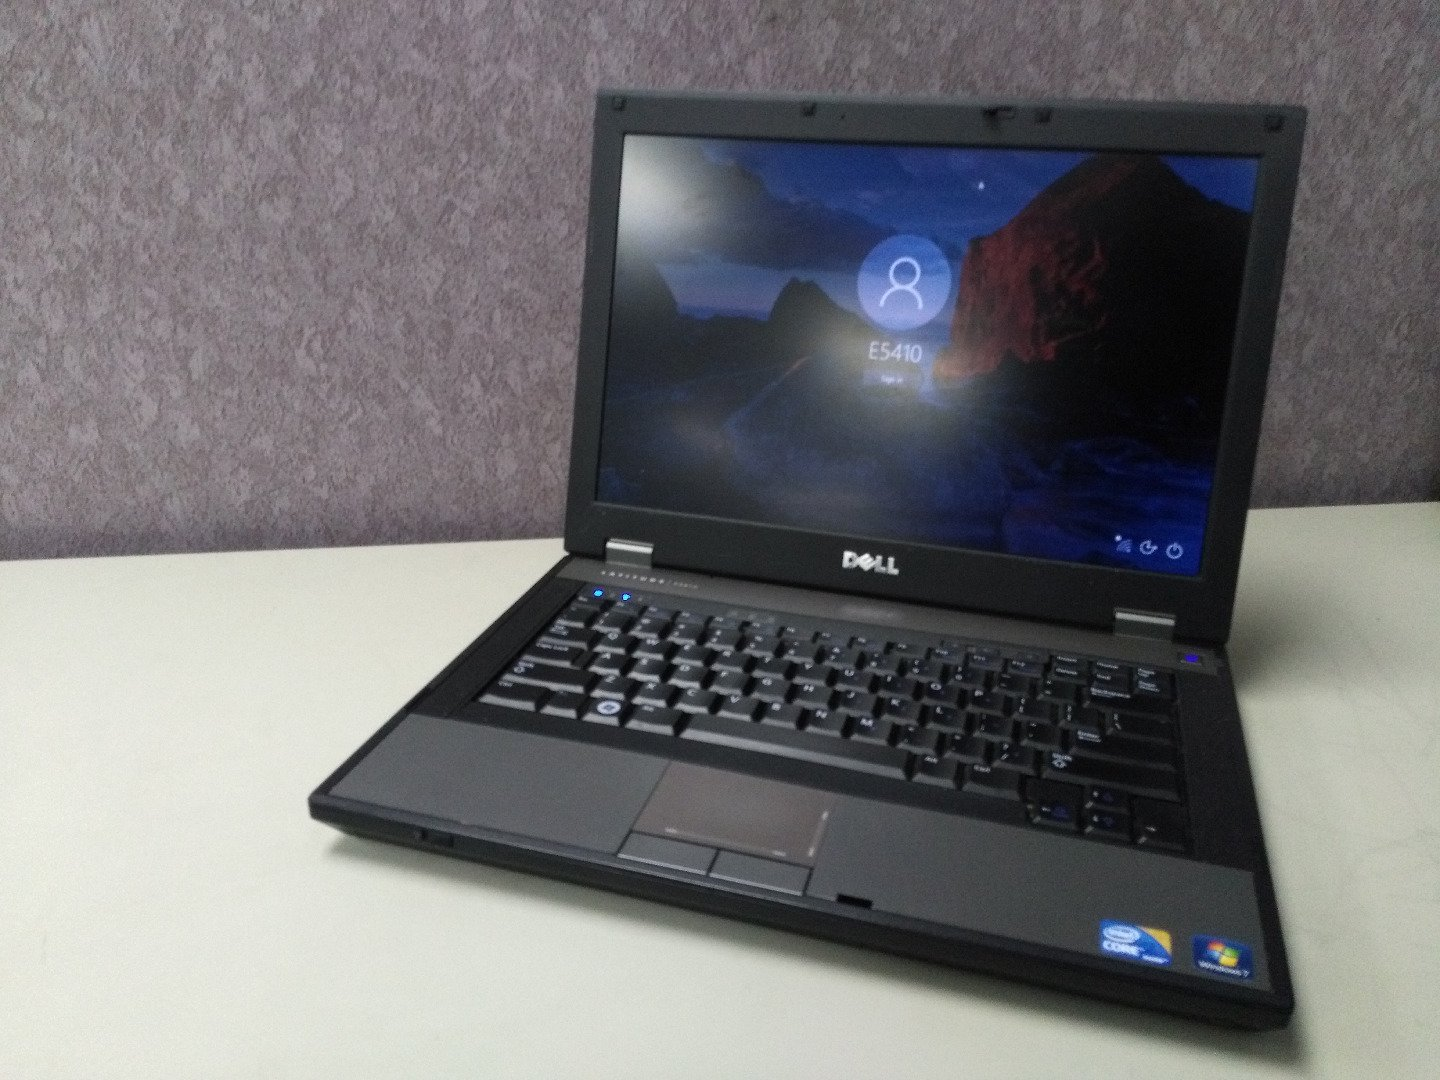 DELL LATITUDE E5410 NOTEBOOK DRIVERS